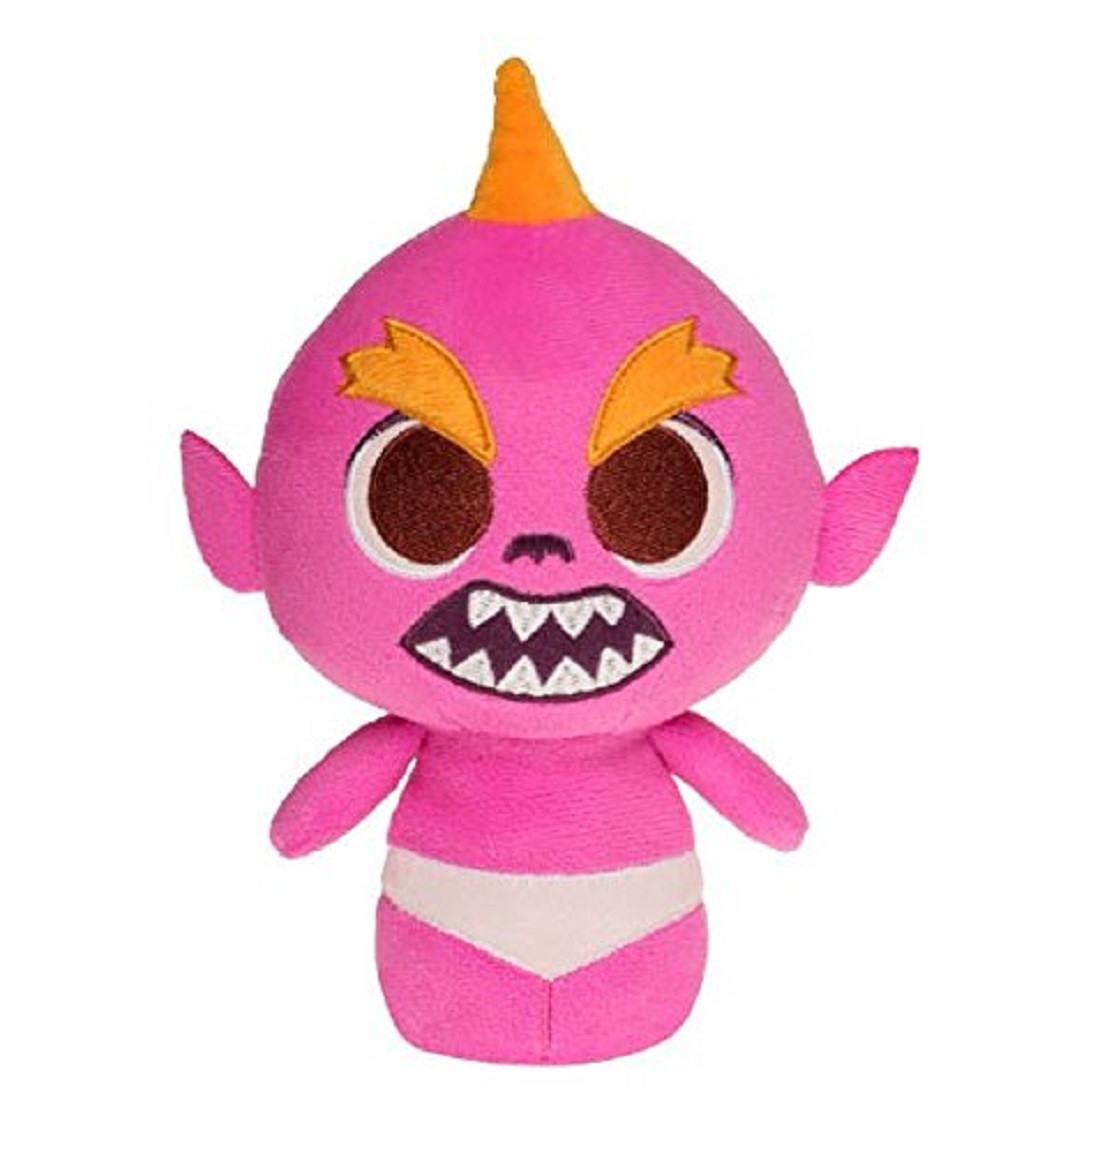 Plush Toy - Incredibles - SuperCute Collectible - Monster Jack Jack